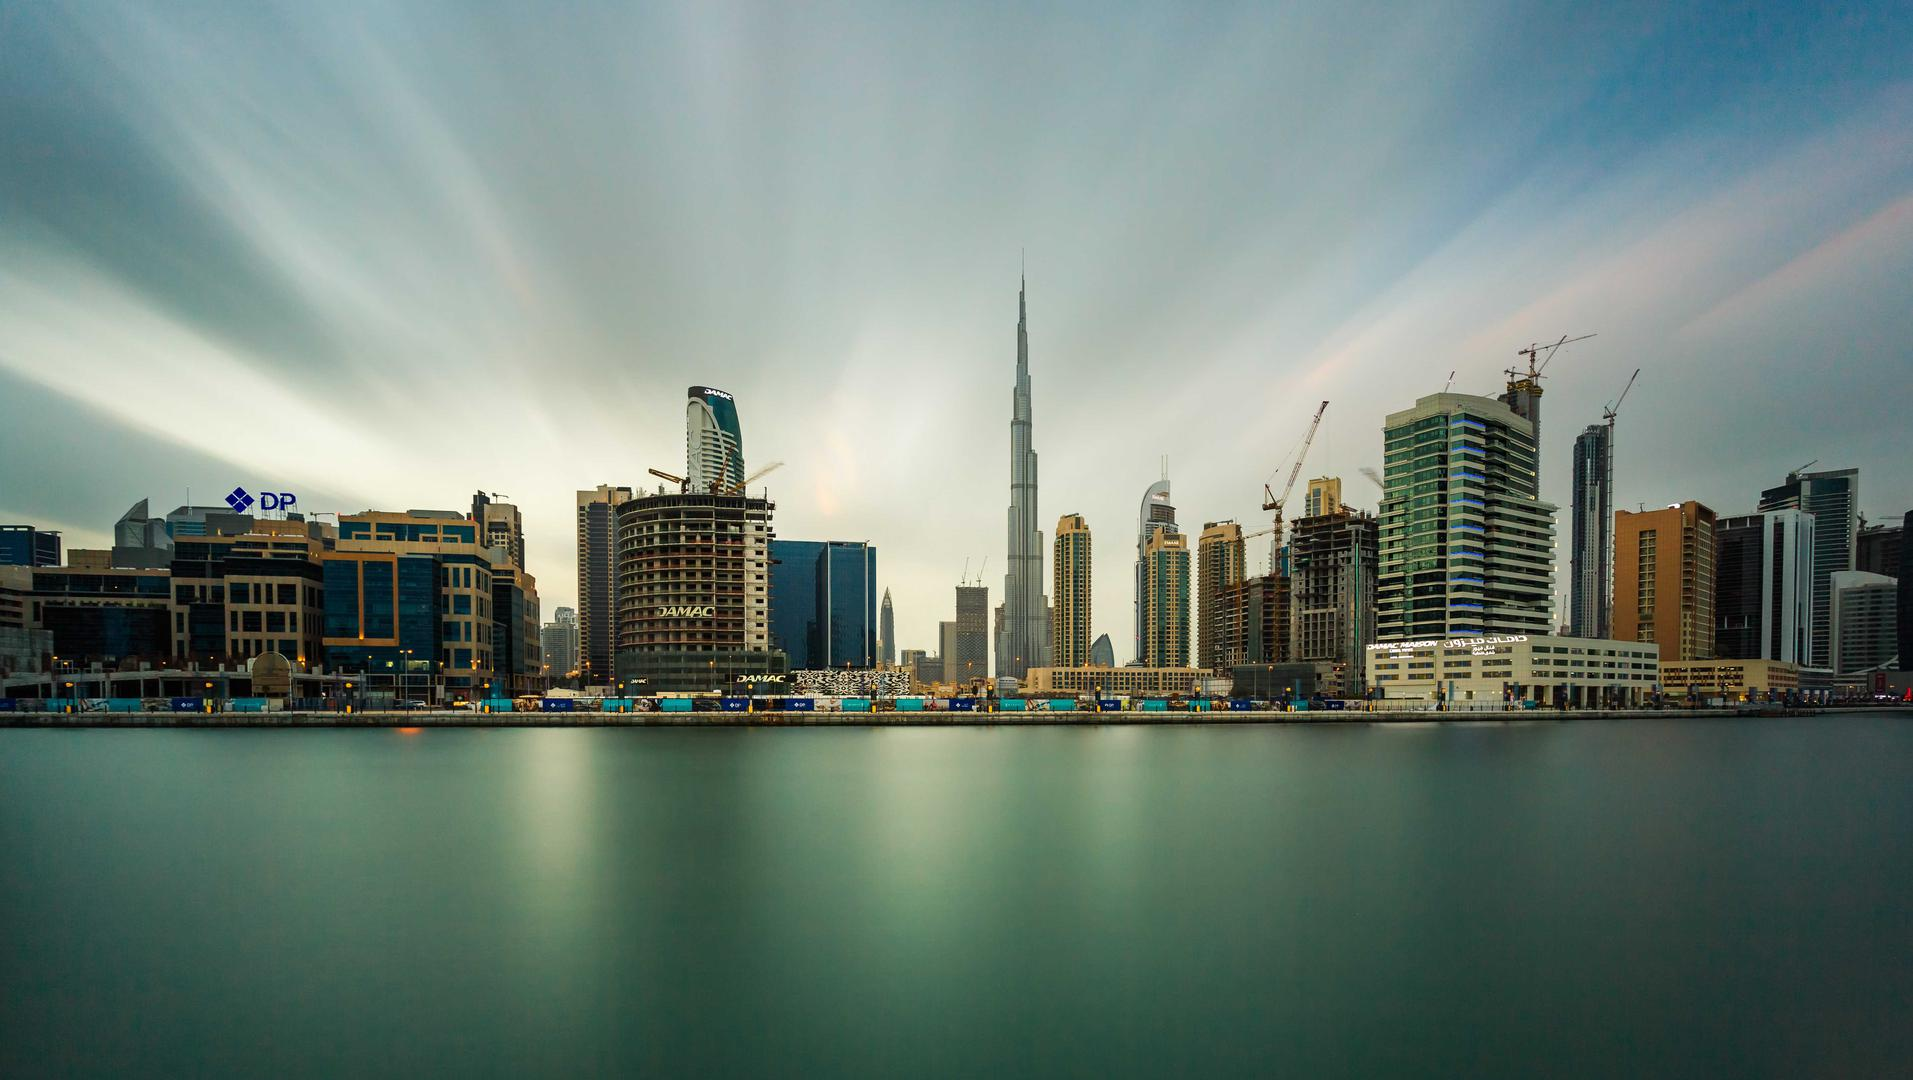 UAE weather: Hazy and cloudy conditions to prevail - News